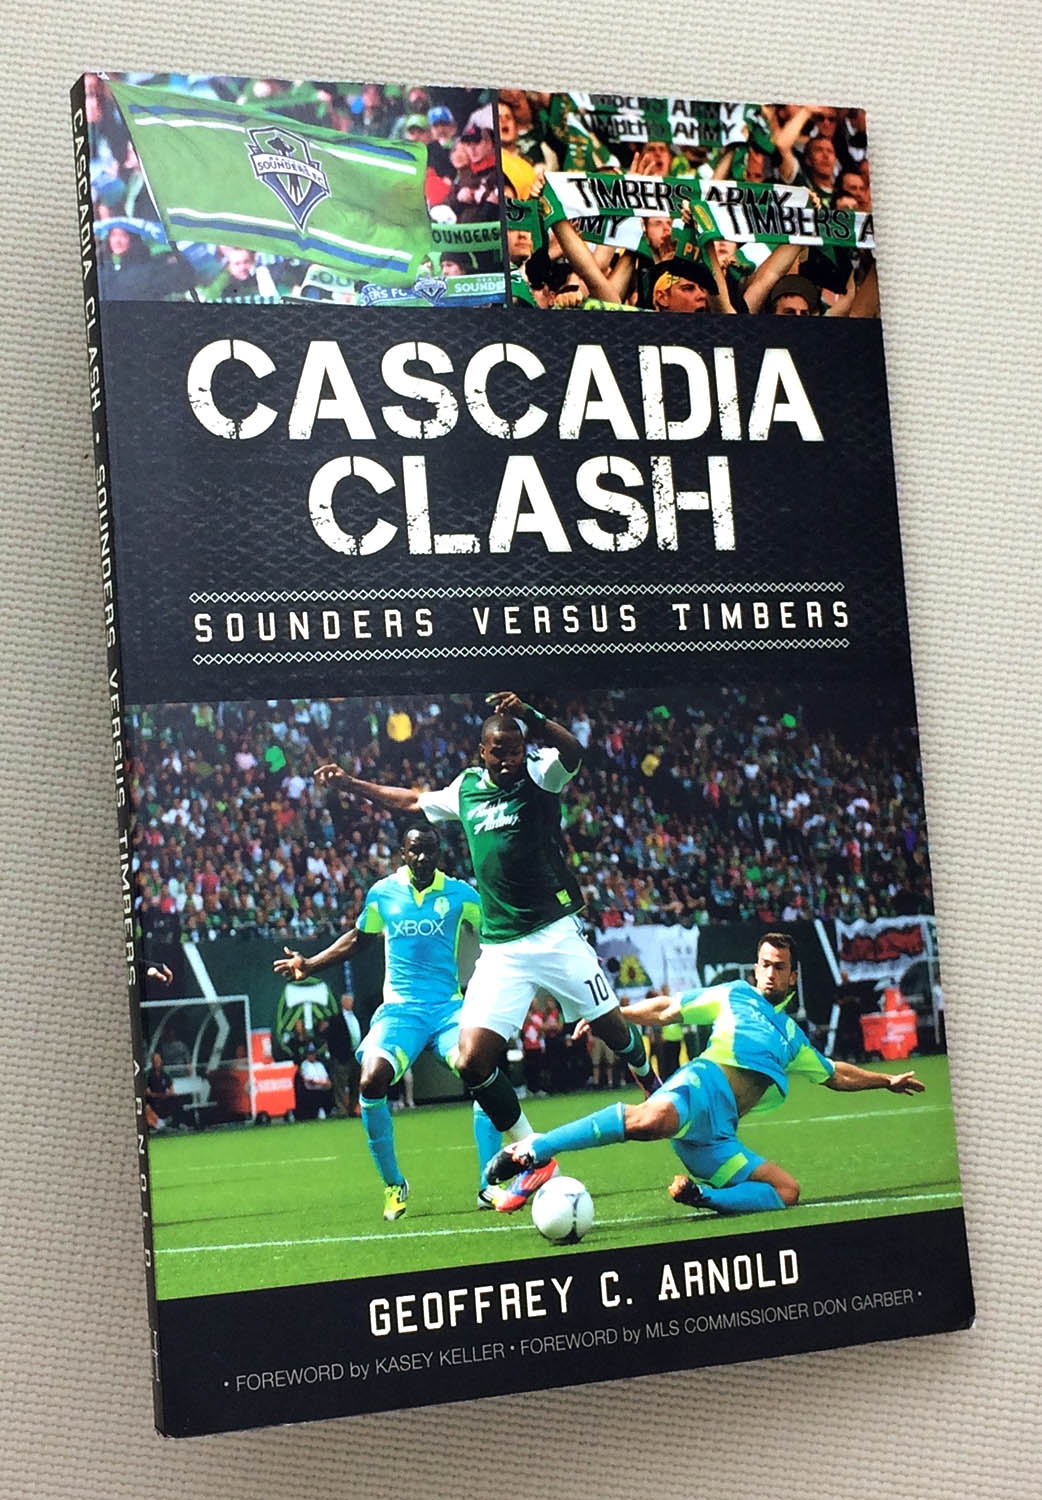 Cascadia Clash: Sounders versus Timbers